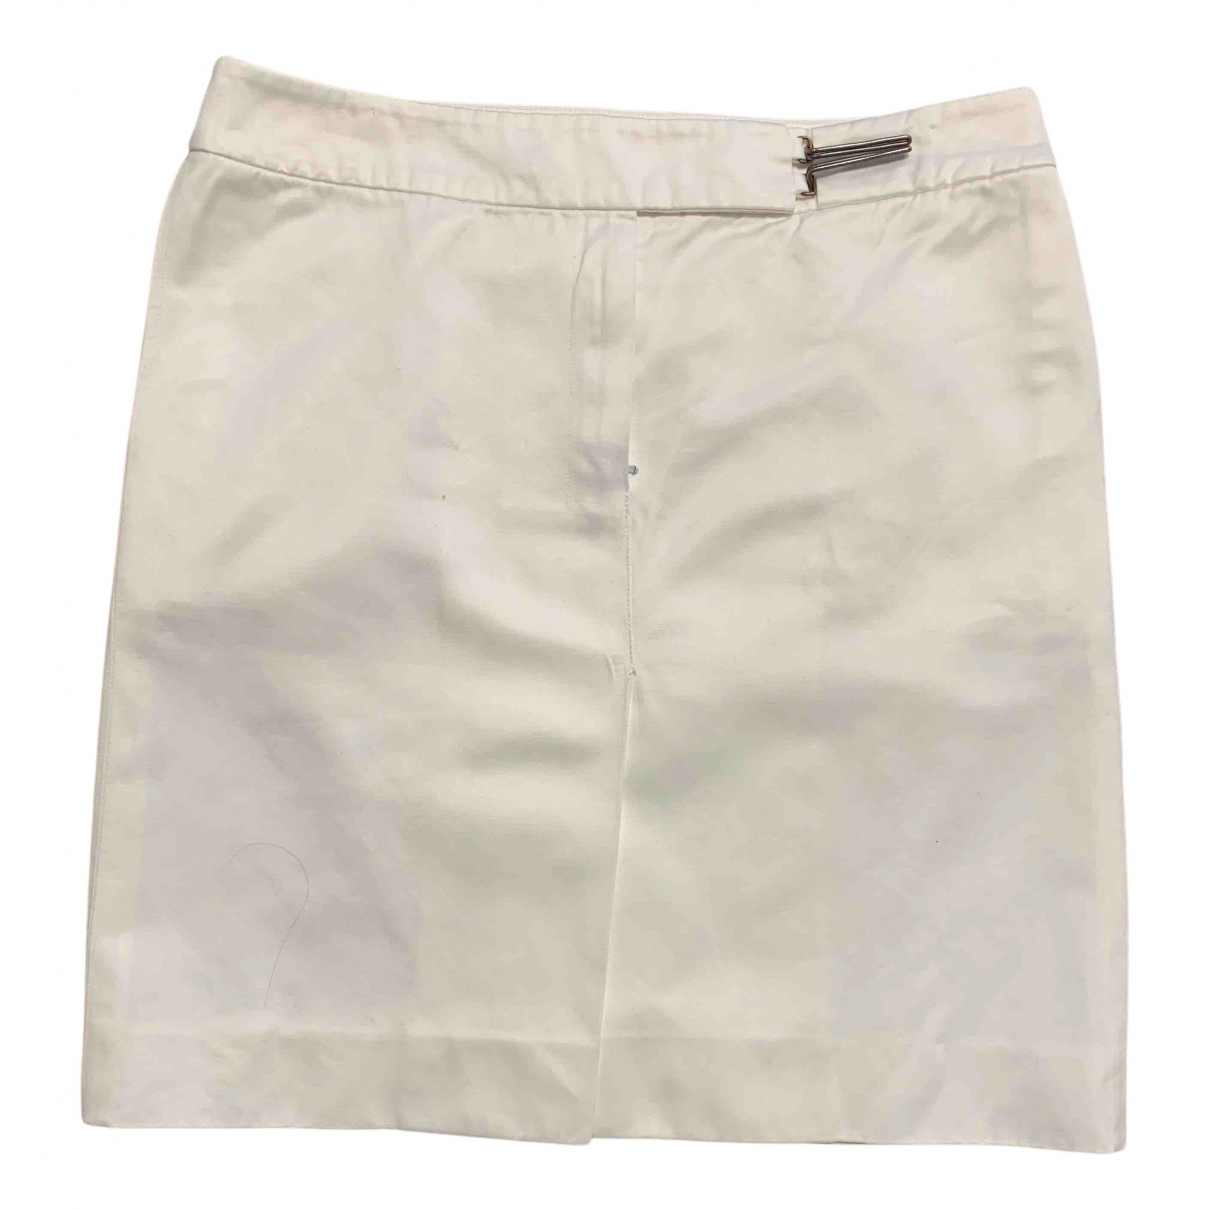 Yves Saint Laurent N White Cotton skirt for Women 38 FR